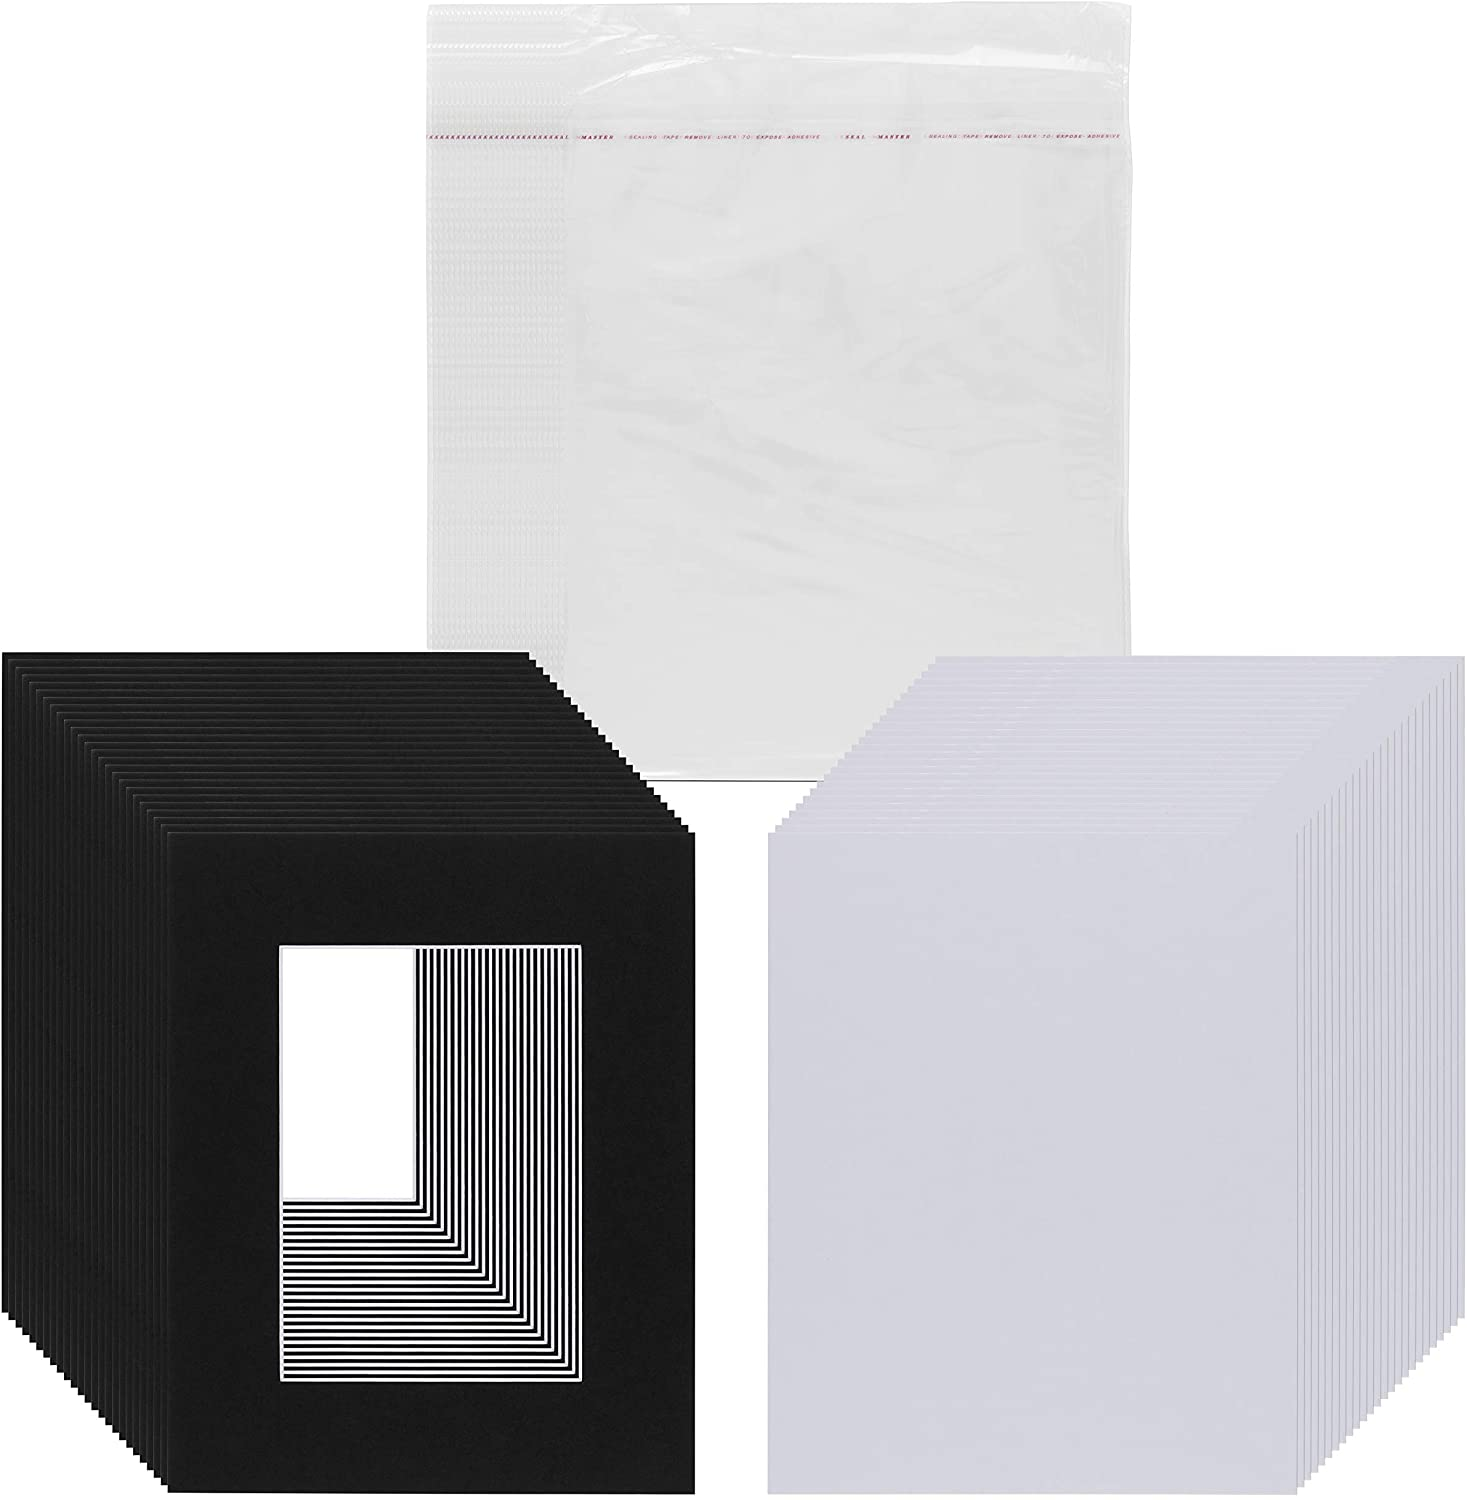 Pack of 25 8x10 Picture Mats Pre Cut for 5x7 Photos or Art, White Core Bevel, Set Includes Backing Board & Sealed Bags - Black